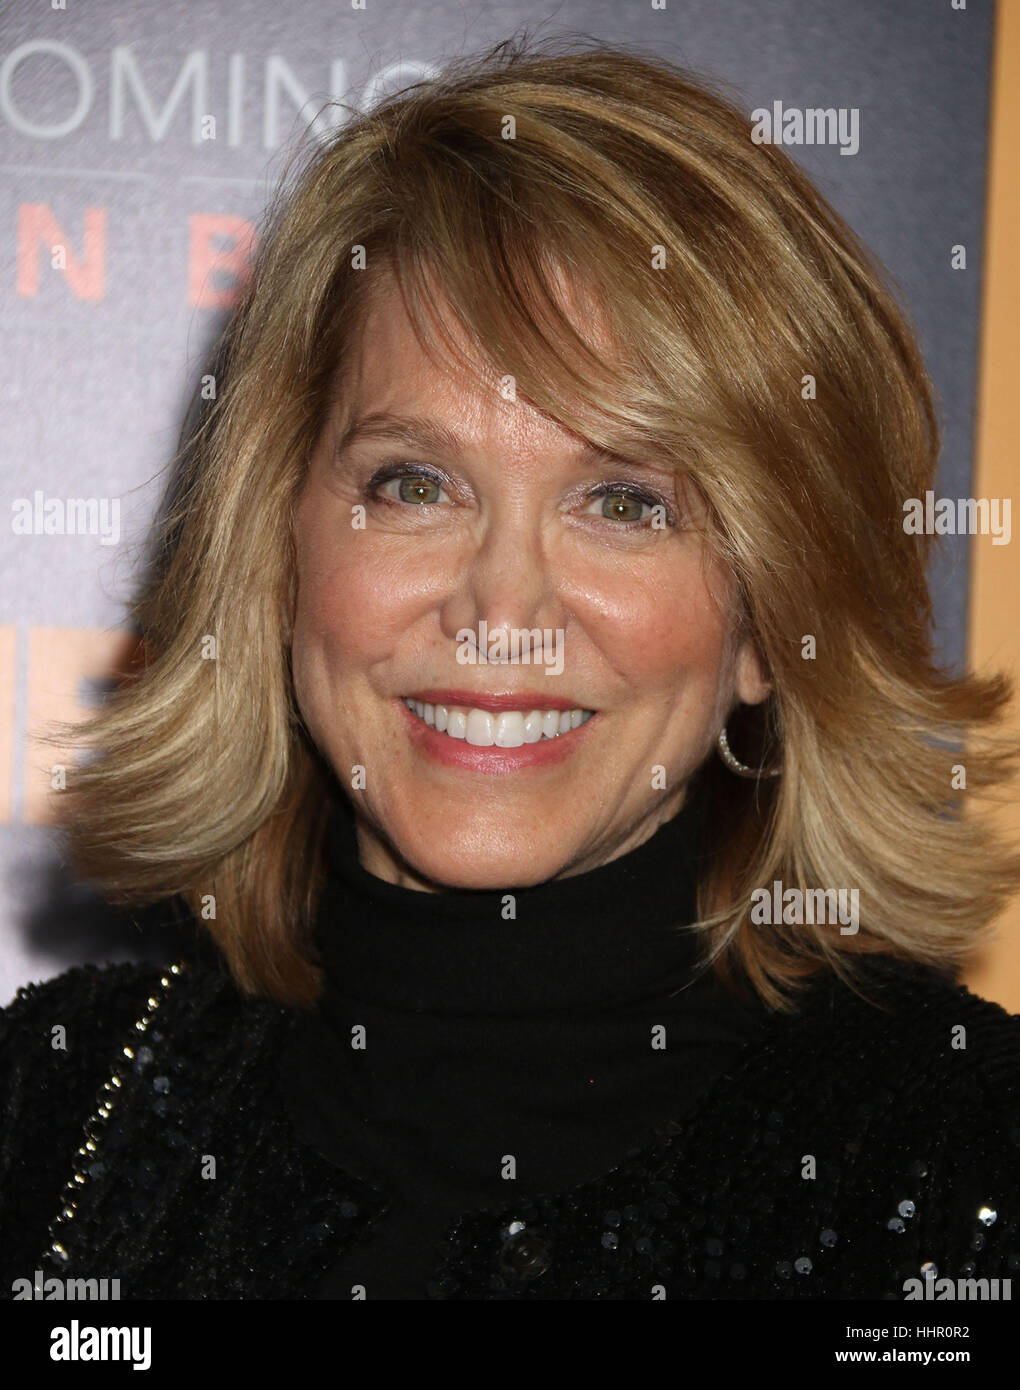 New York, USA. 19th Jan, 2017. Paula Zahn attends the world premiere of the HBO film 'Becoming Warren Buffett' held Stock Photo